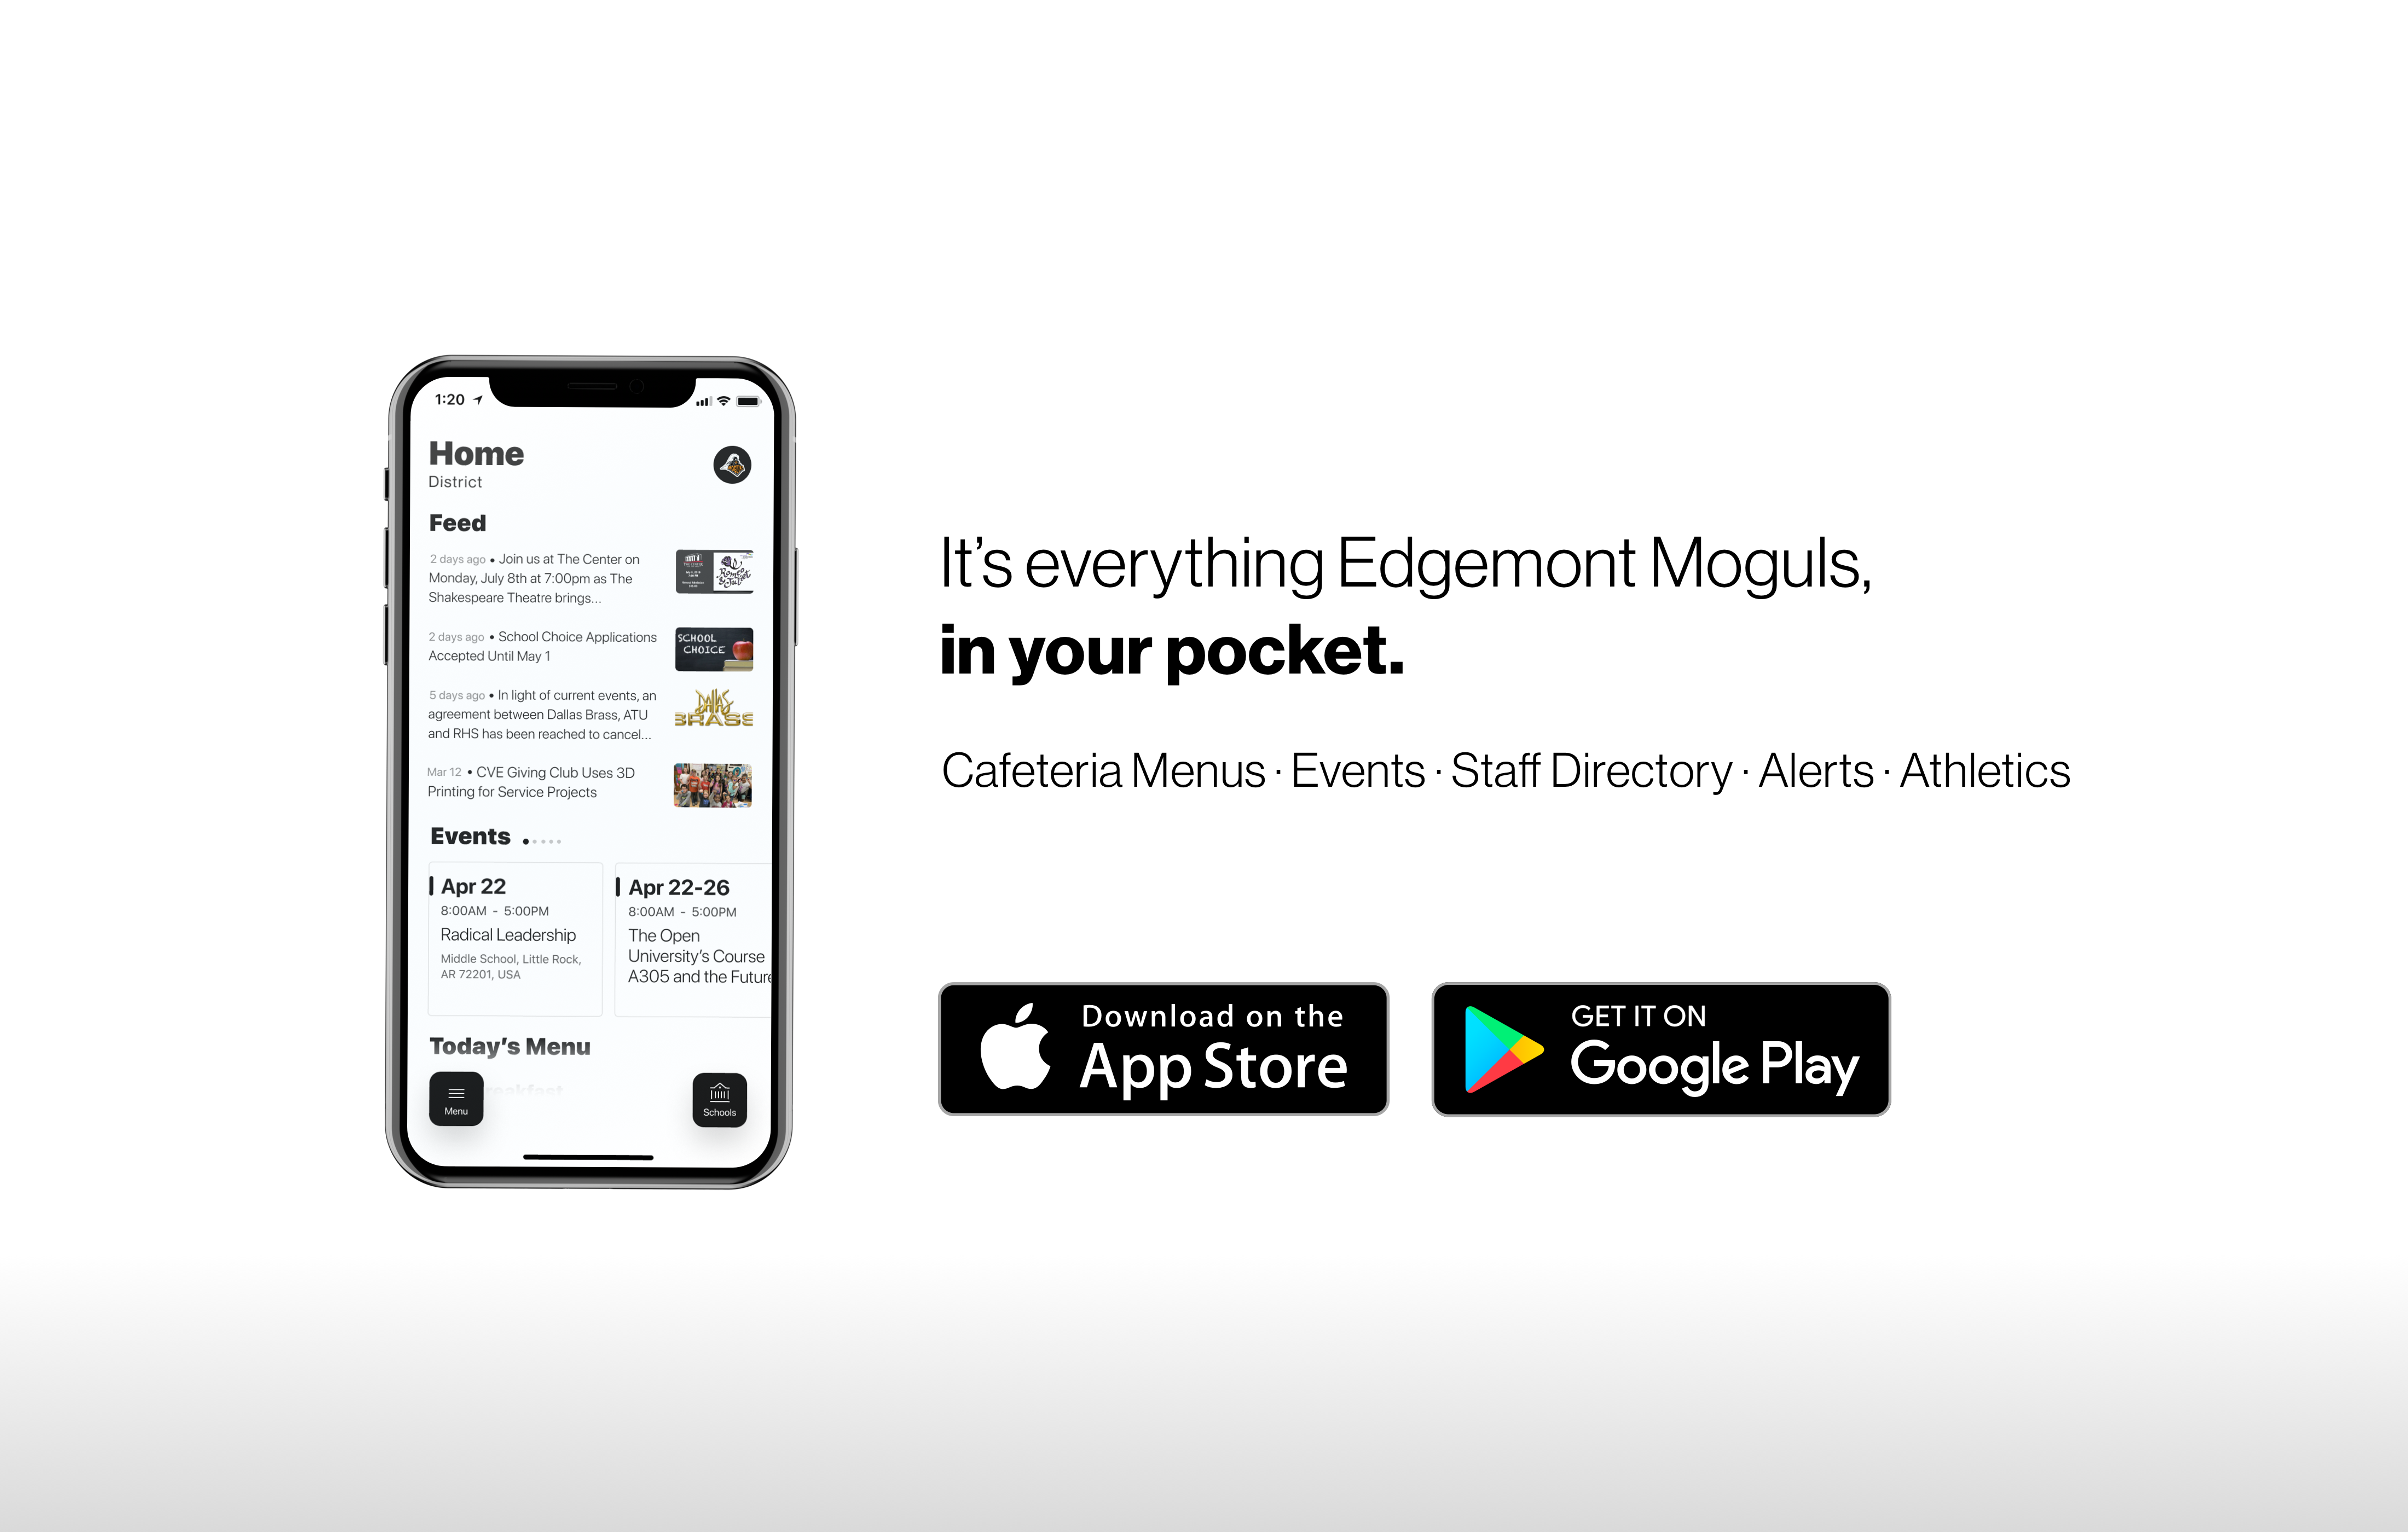 It's everything Edgemont Monguls, in your pocket!